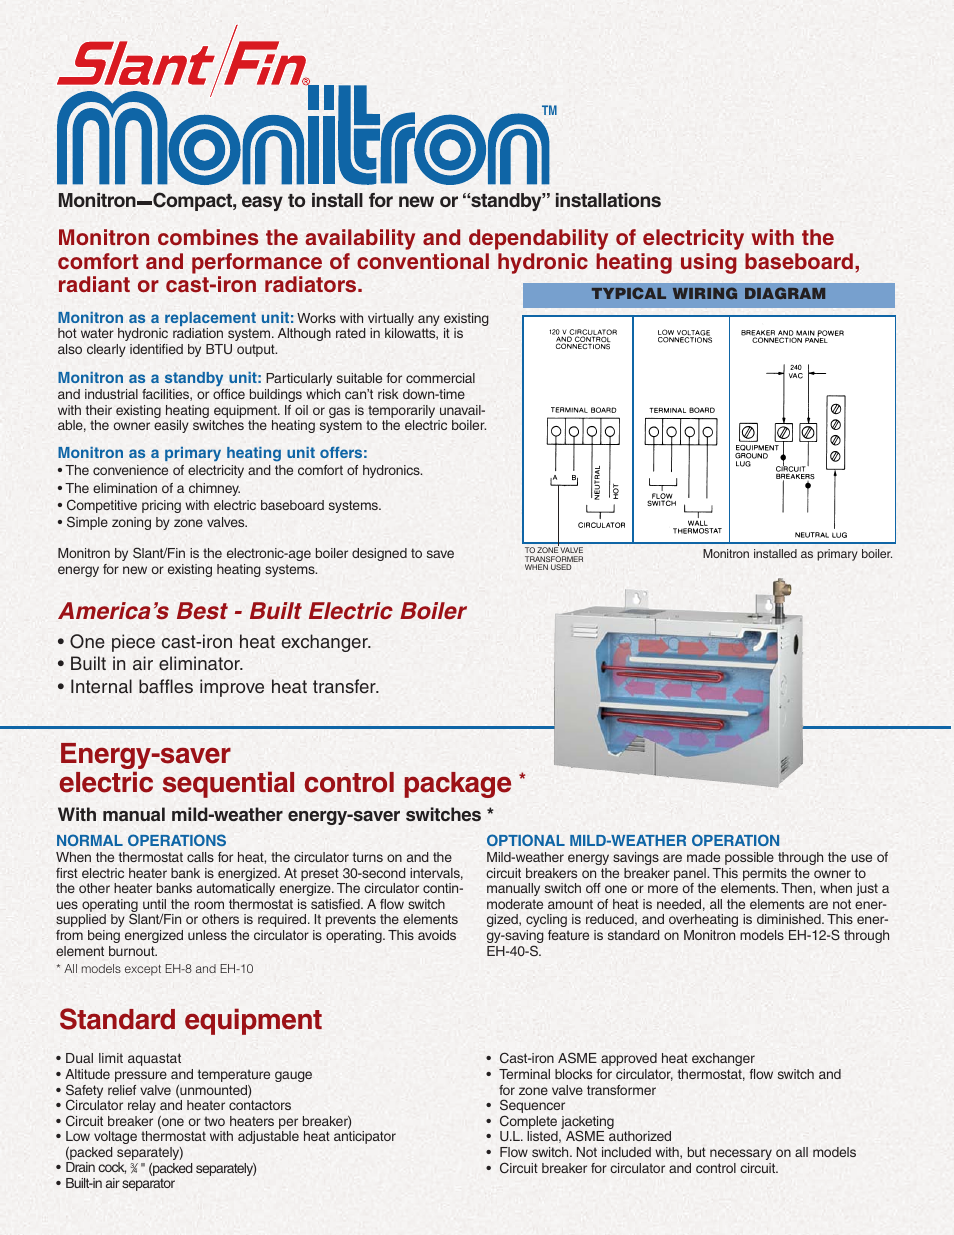 energy-saver electric sequential control package, standard equipment,  america's best - built electric boiler   slant/fin monitron eh boilers user  manual